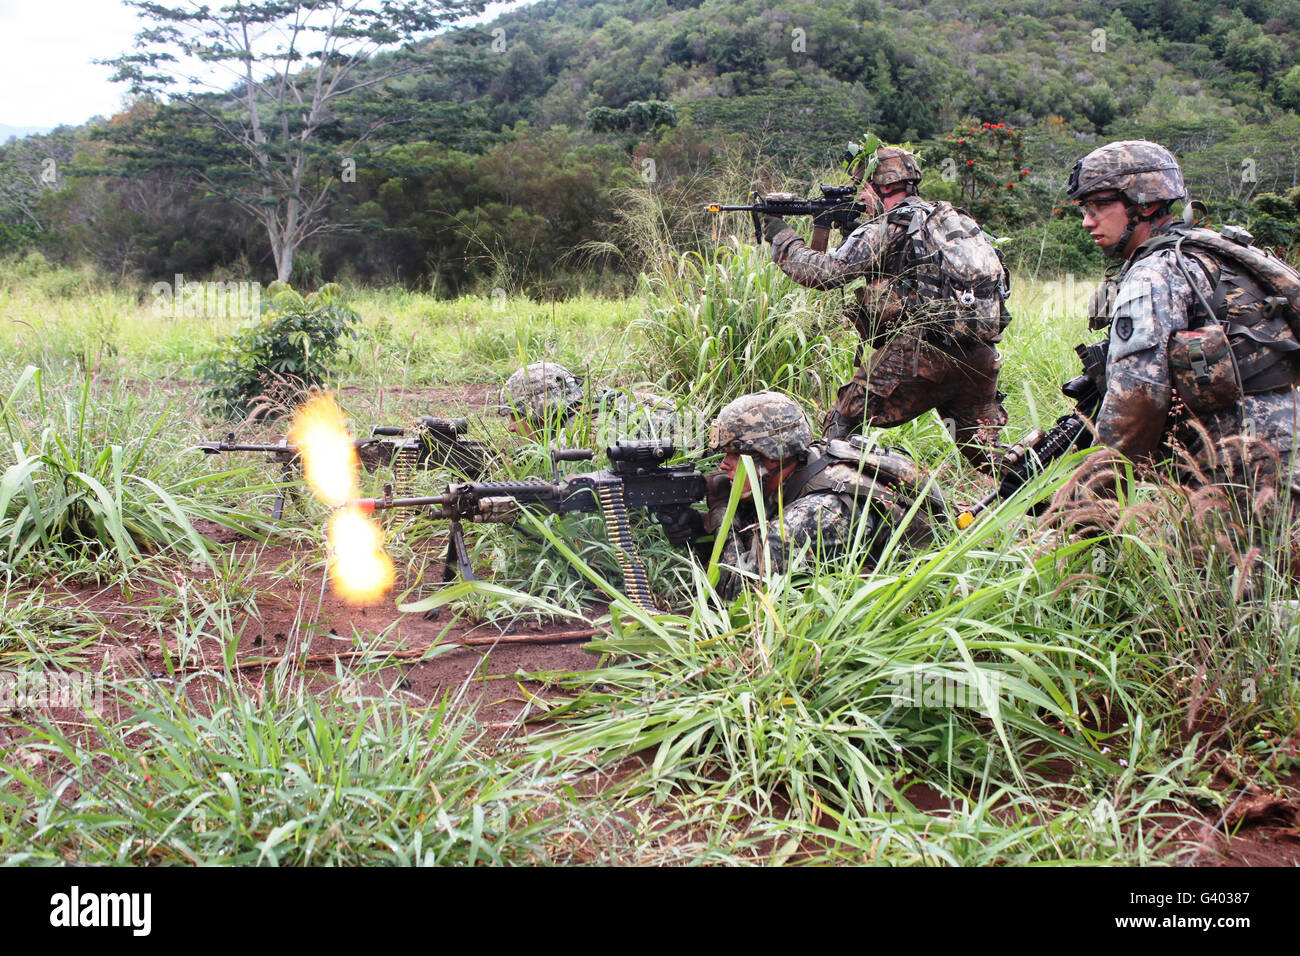 Infantryman fires a burst from his M240B machine gun. - Stock Image